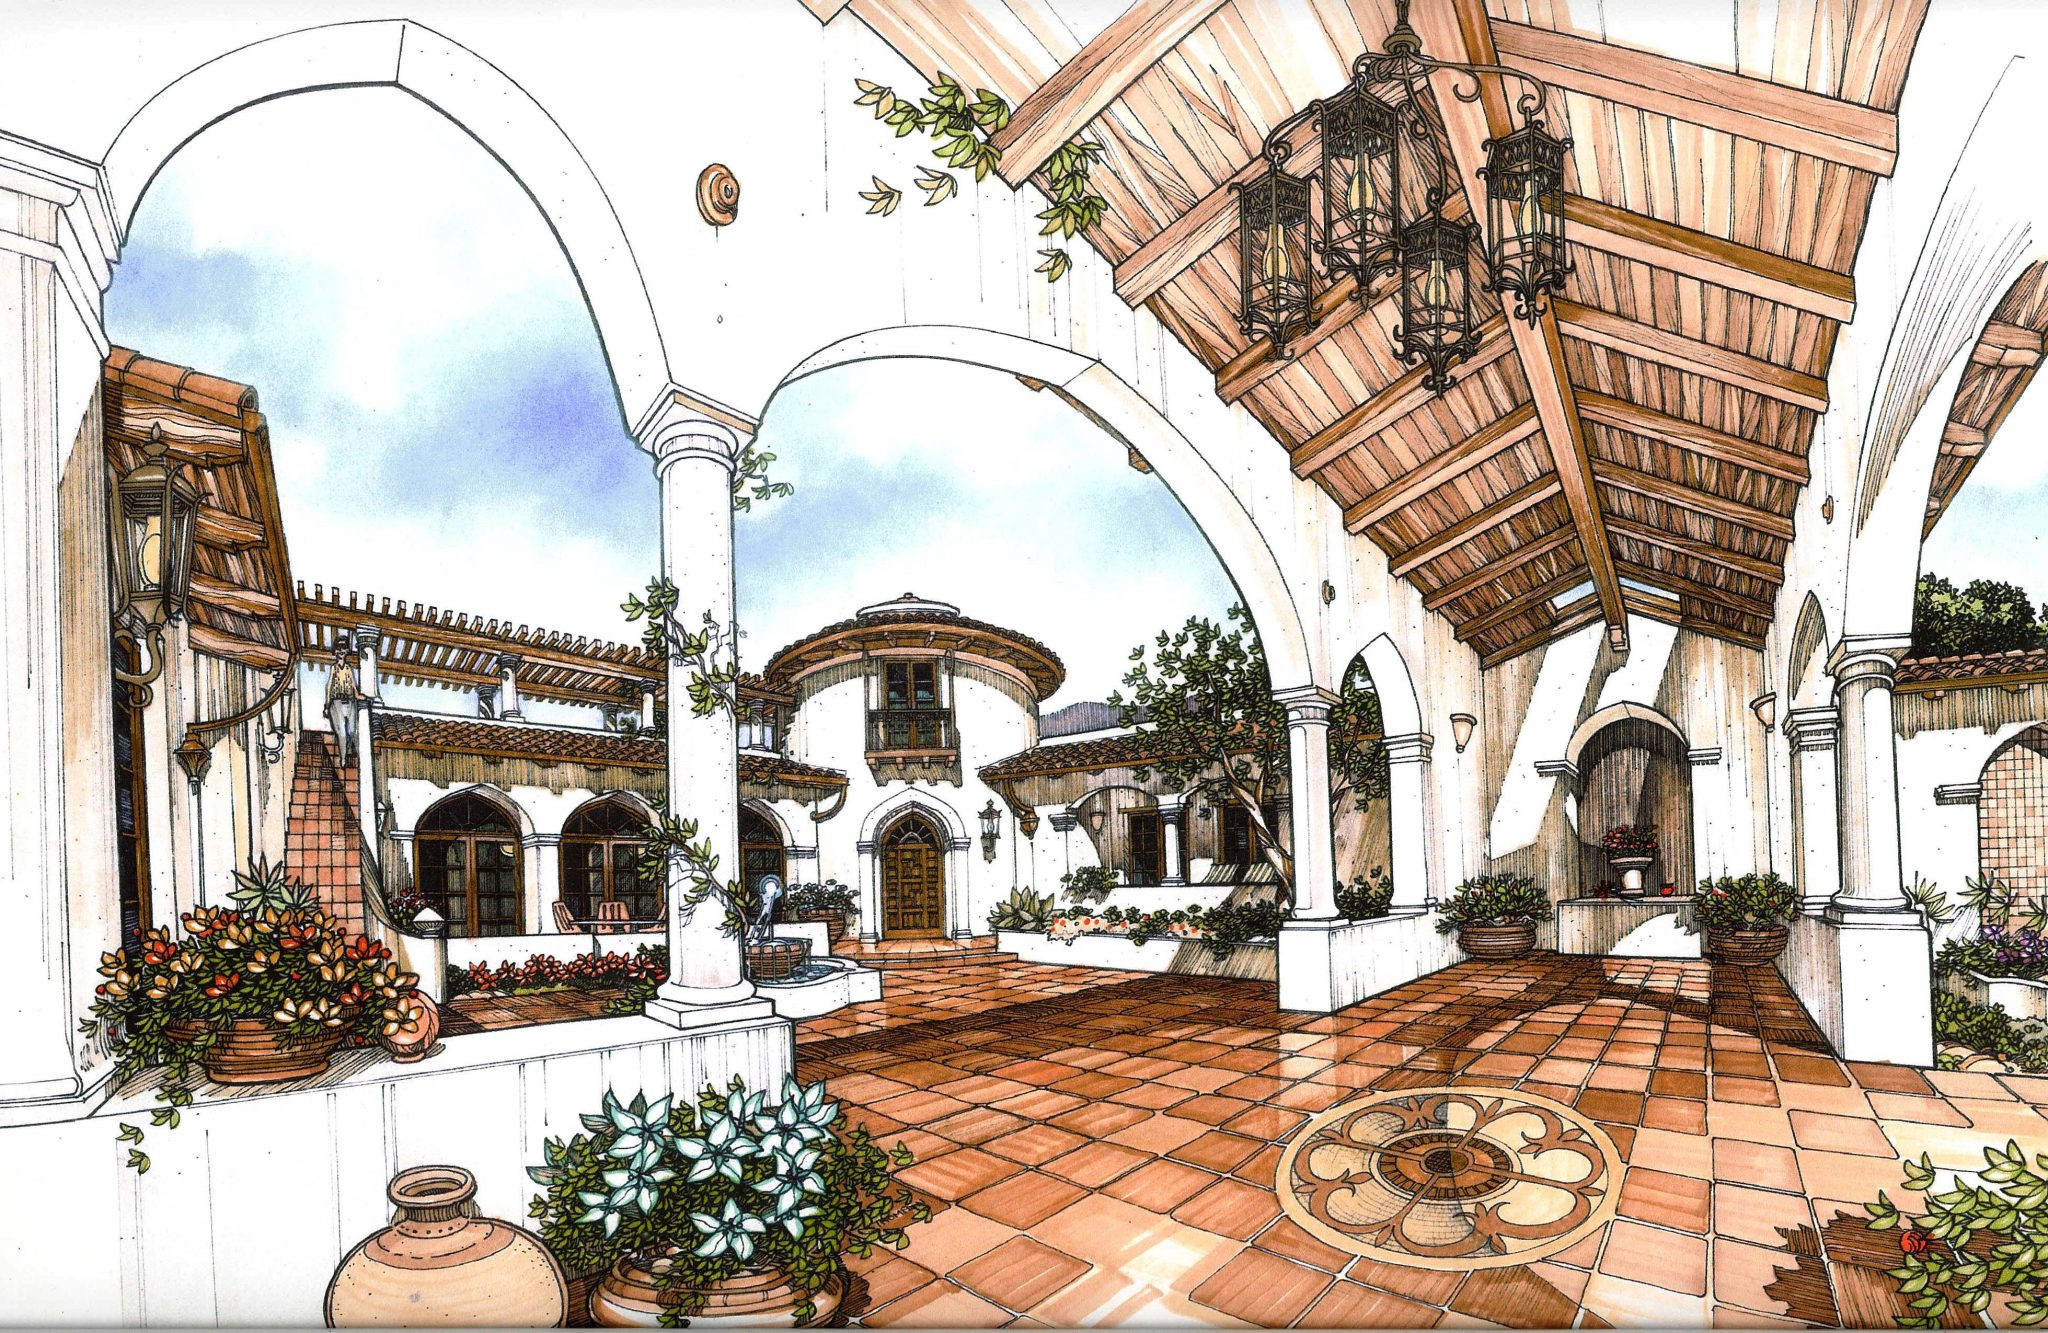 La Romana - The Entry Court, framed by a Loggia and a Raised Terrace, Upper terrace beyond via stairs